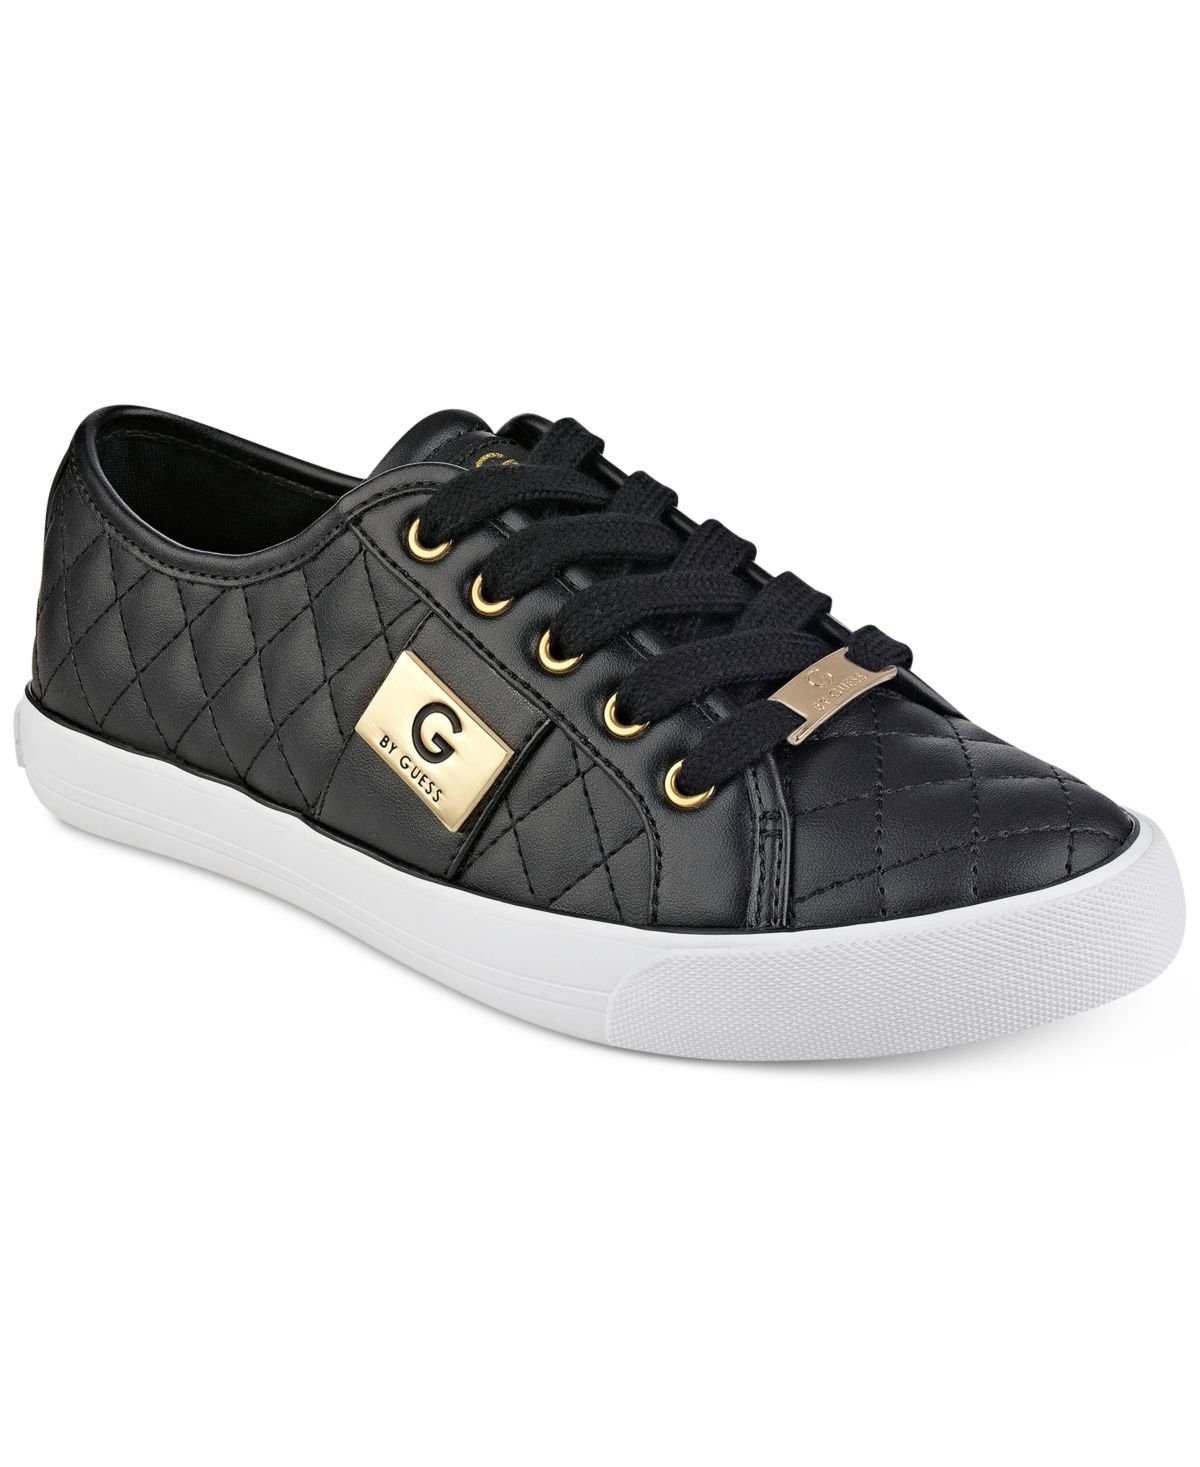 G by GUESS Backer2 Women's Lace-up Sneakers Shoes B076BW7GZQ 7.5 B(M) US|Black